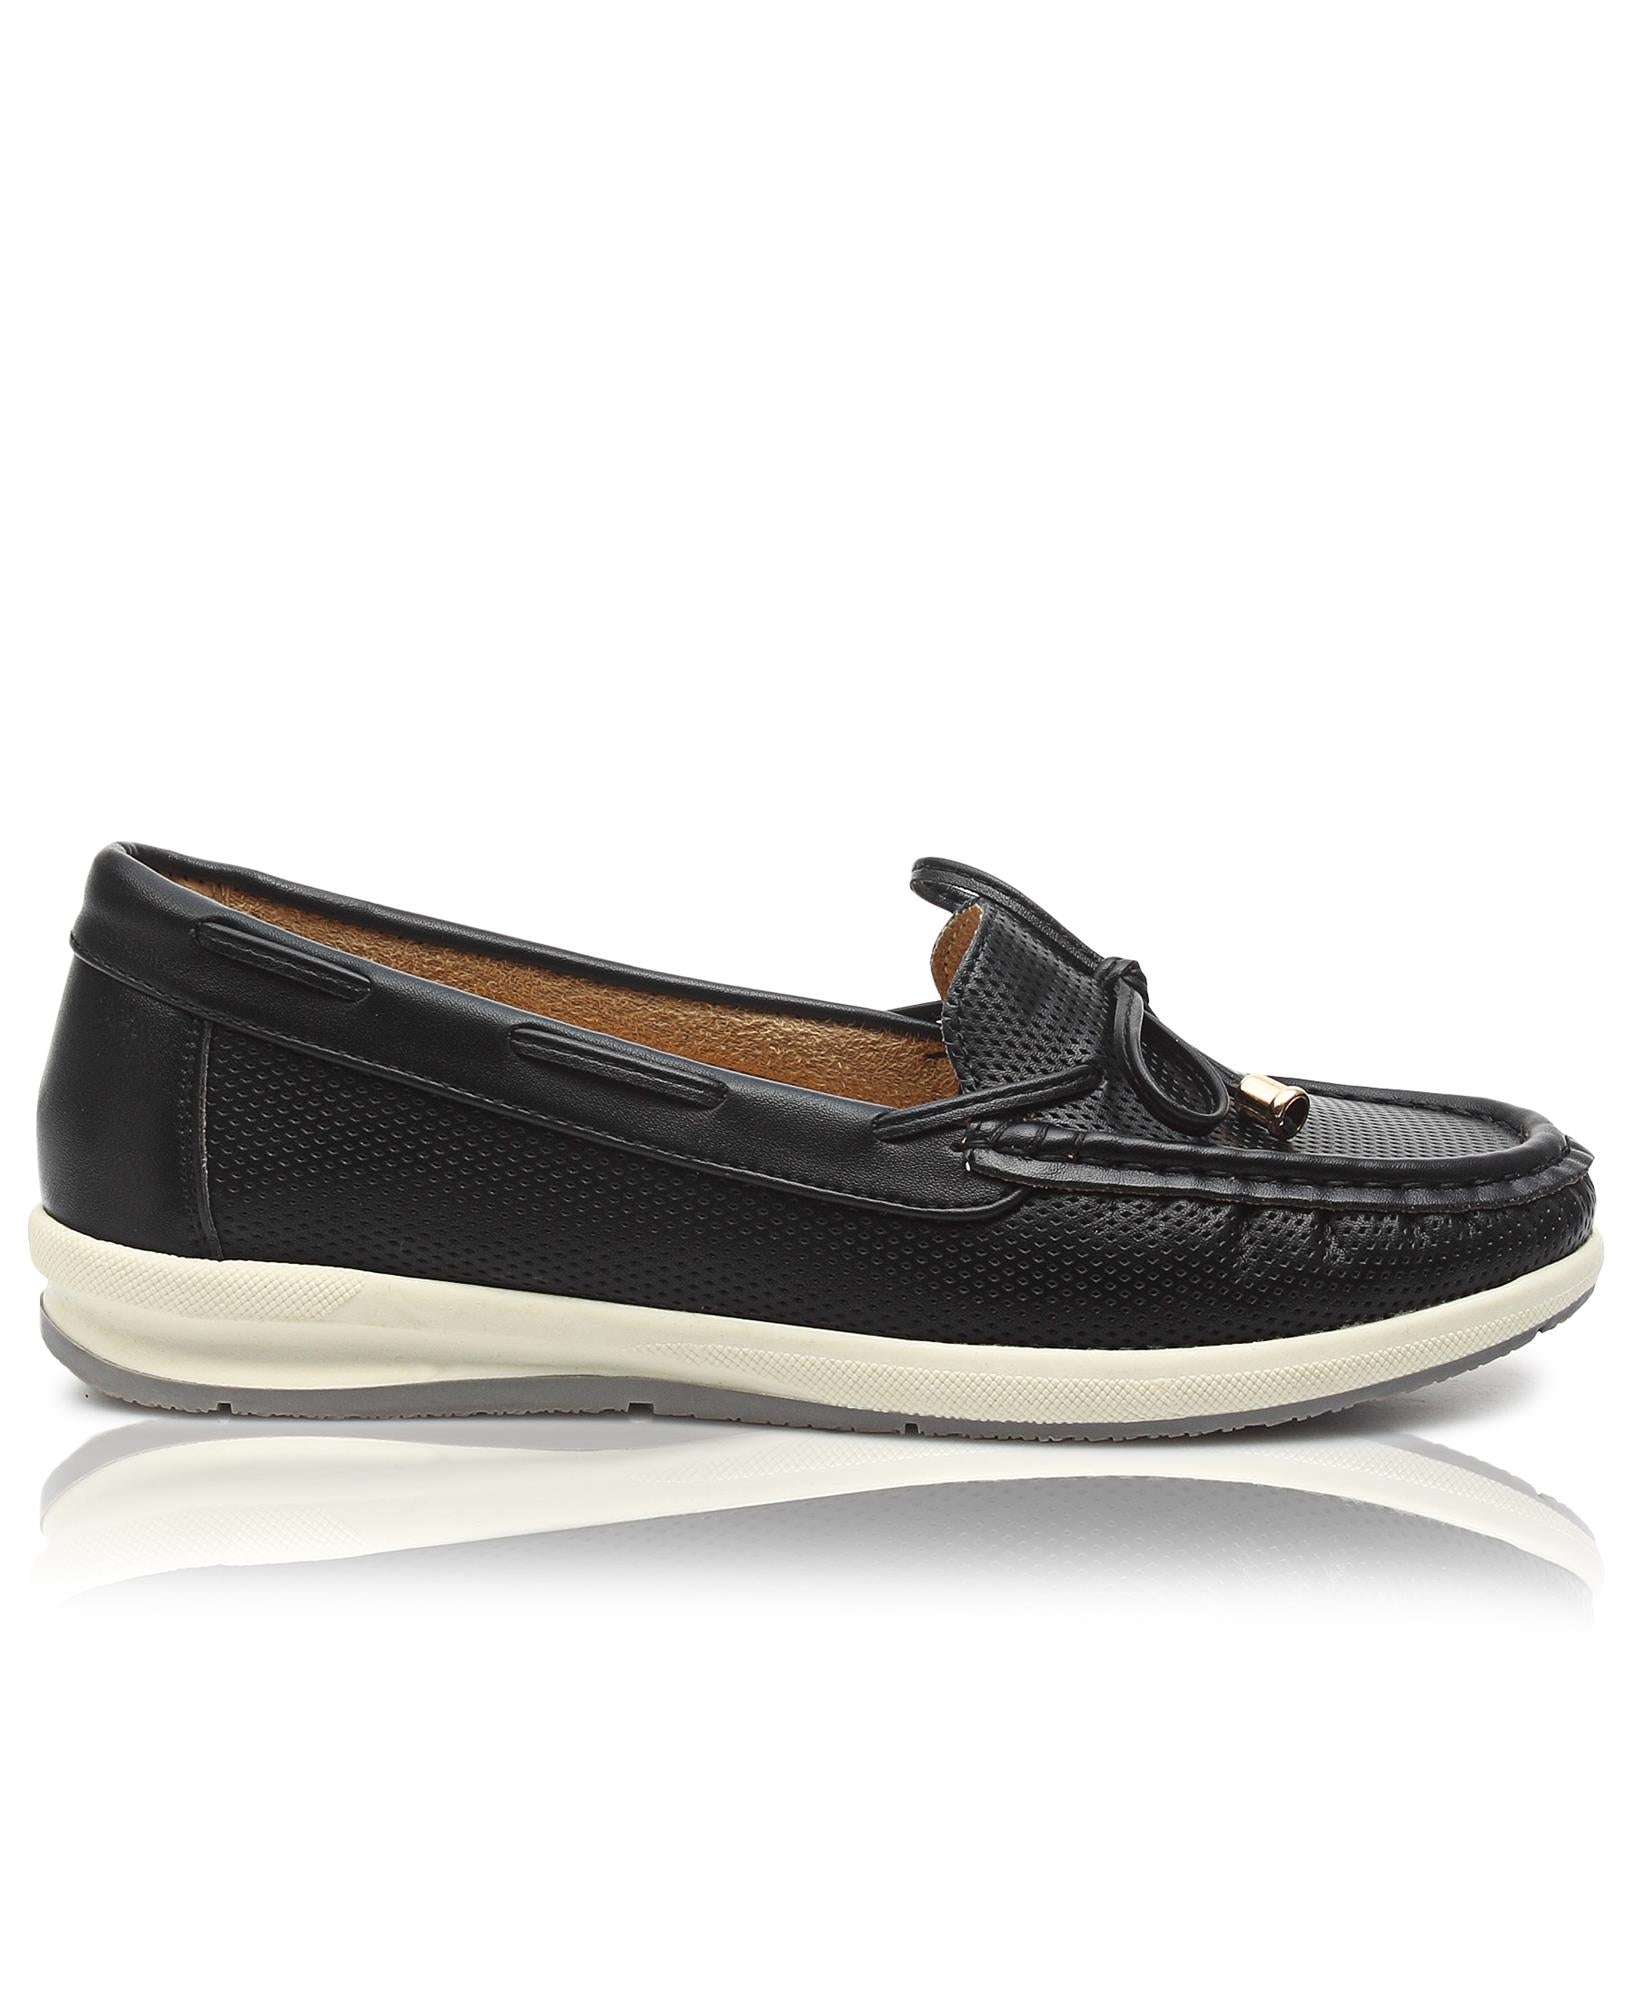 Ladies' Loafers - Black